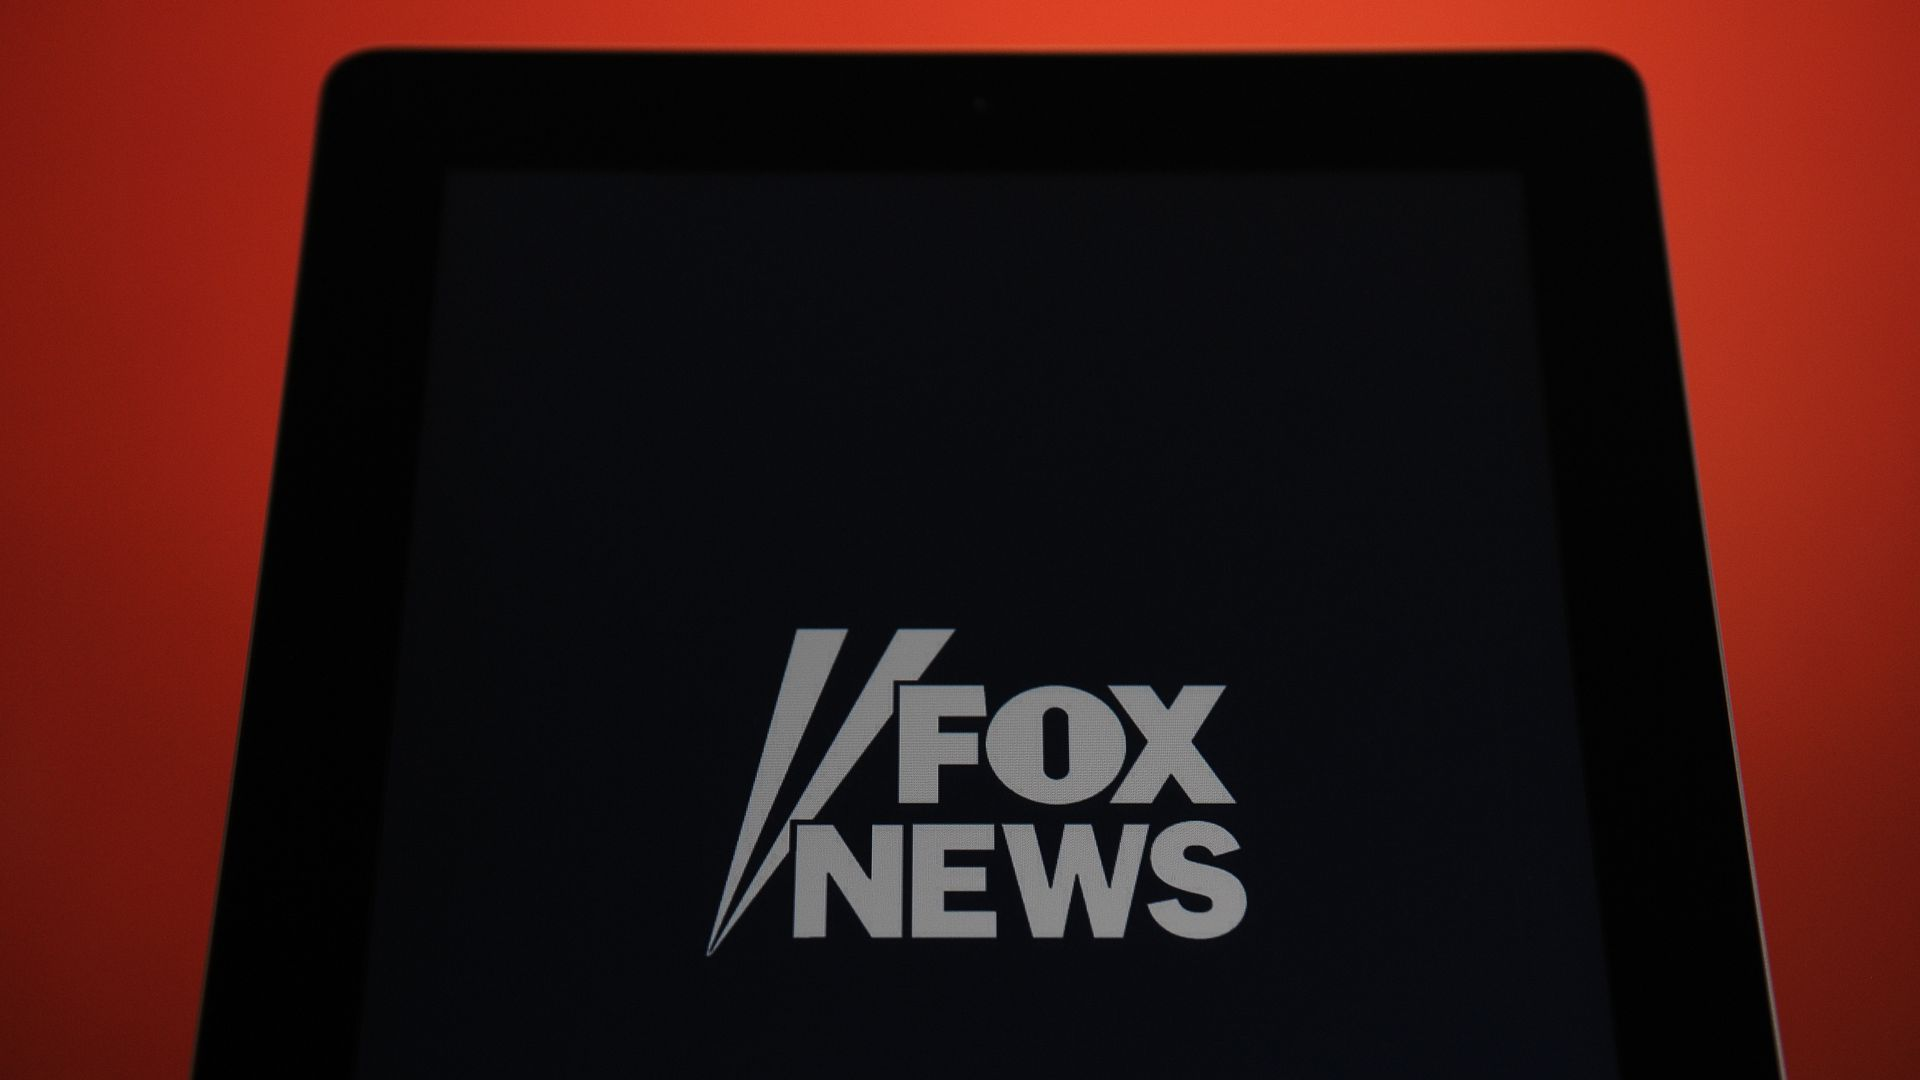 In this image, a large black screen displays the Fox News logo.